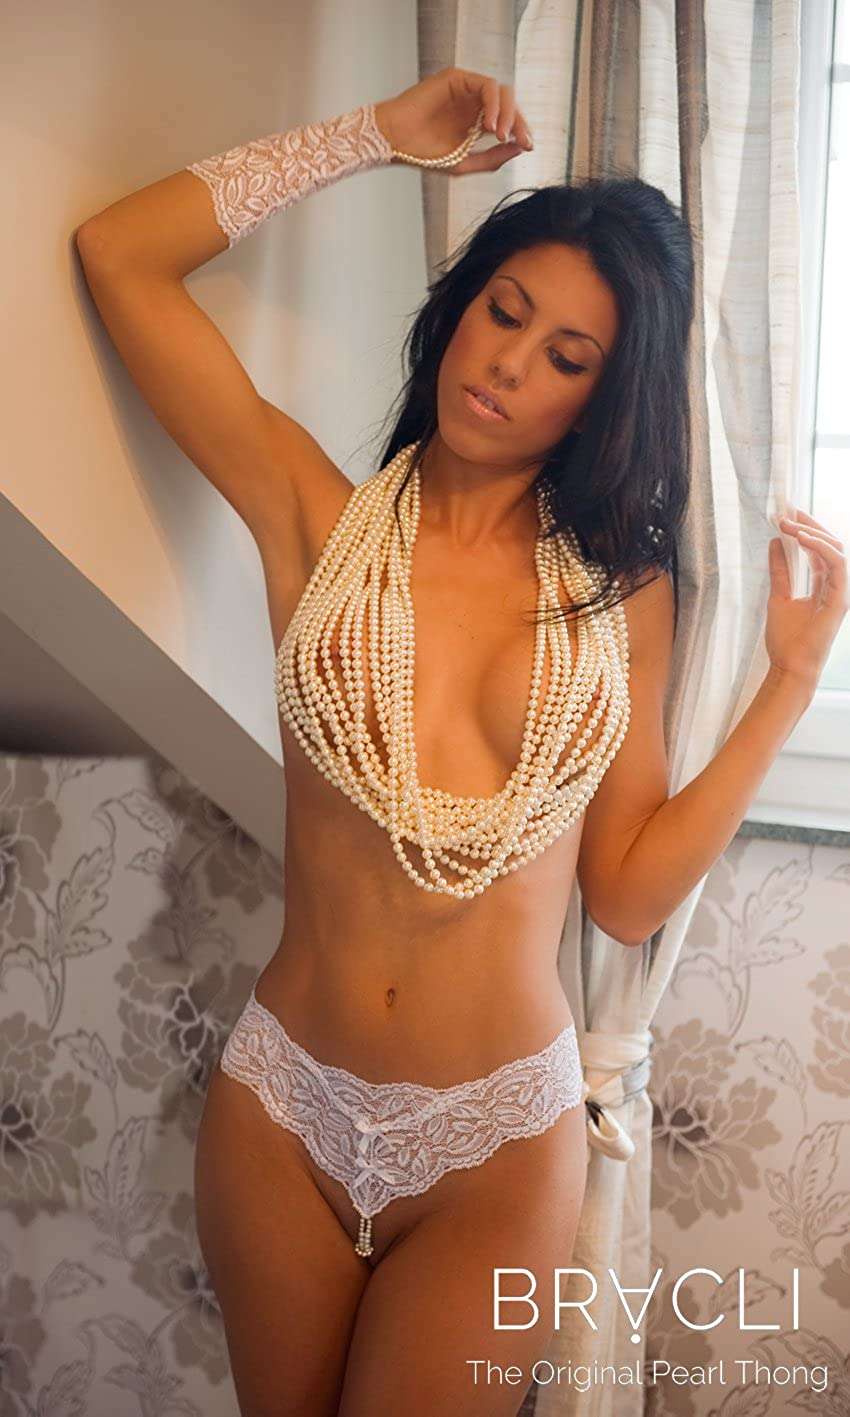 0620350fd2a Bracli Paris Collection Double Strand Pearl Thong  Amazon.ca  Clothing    Accessories